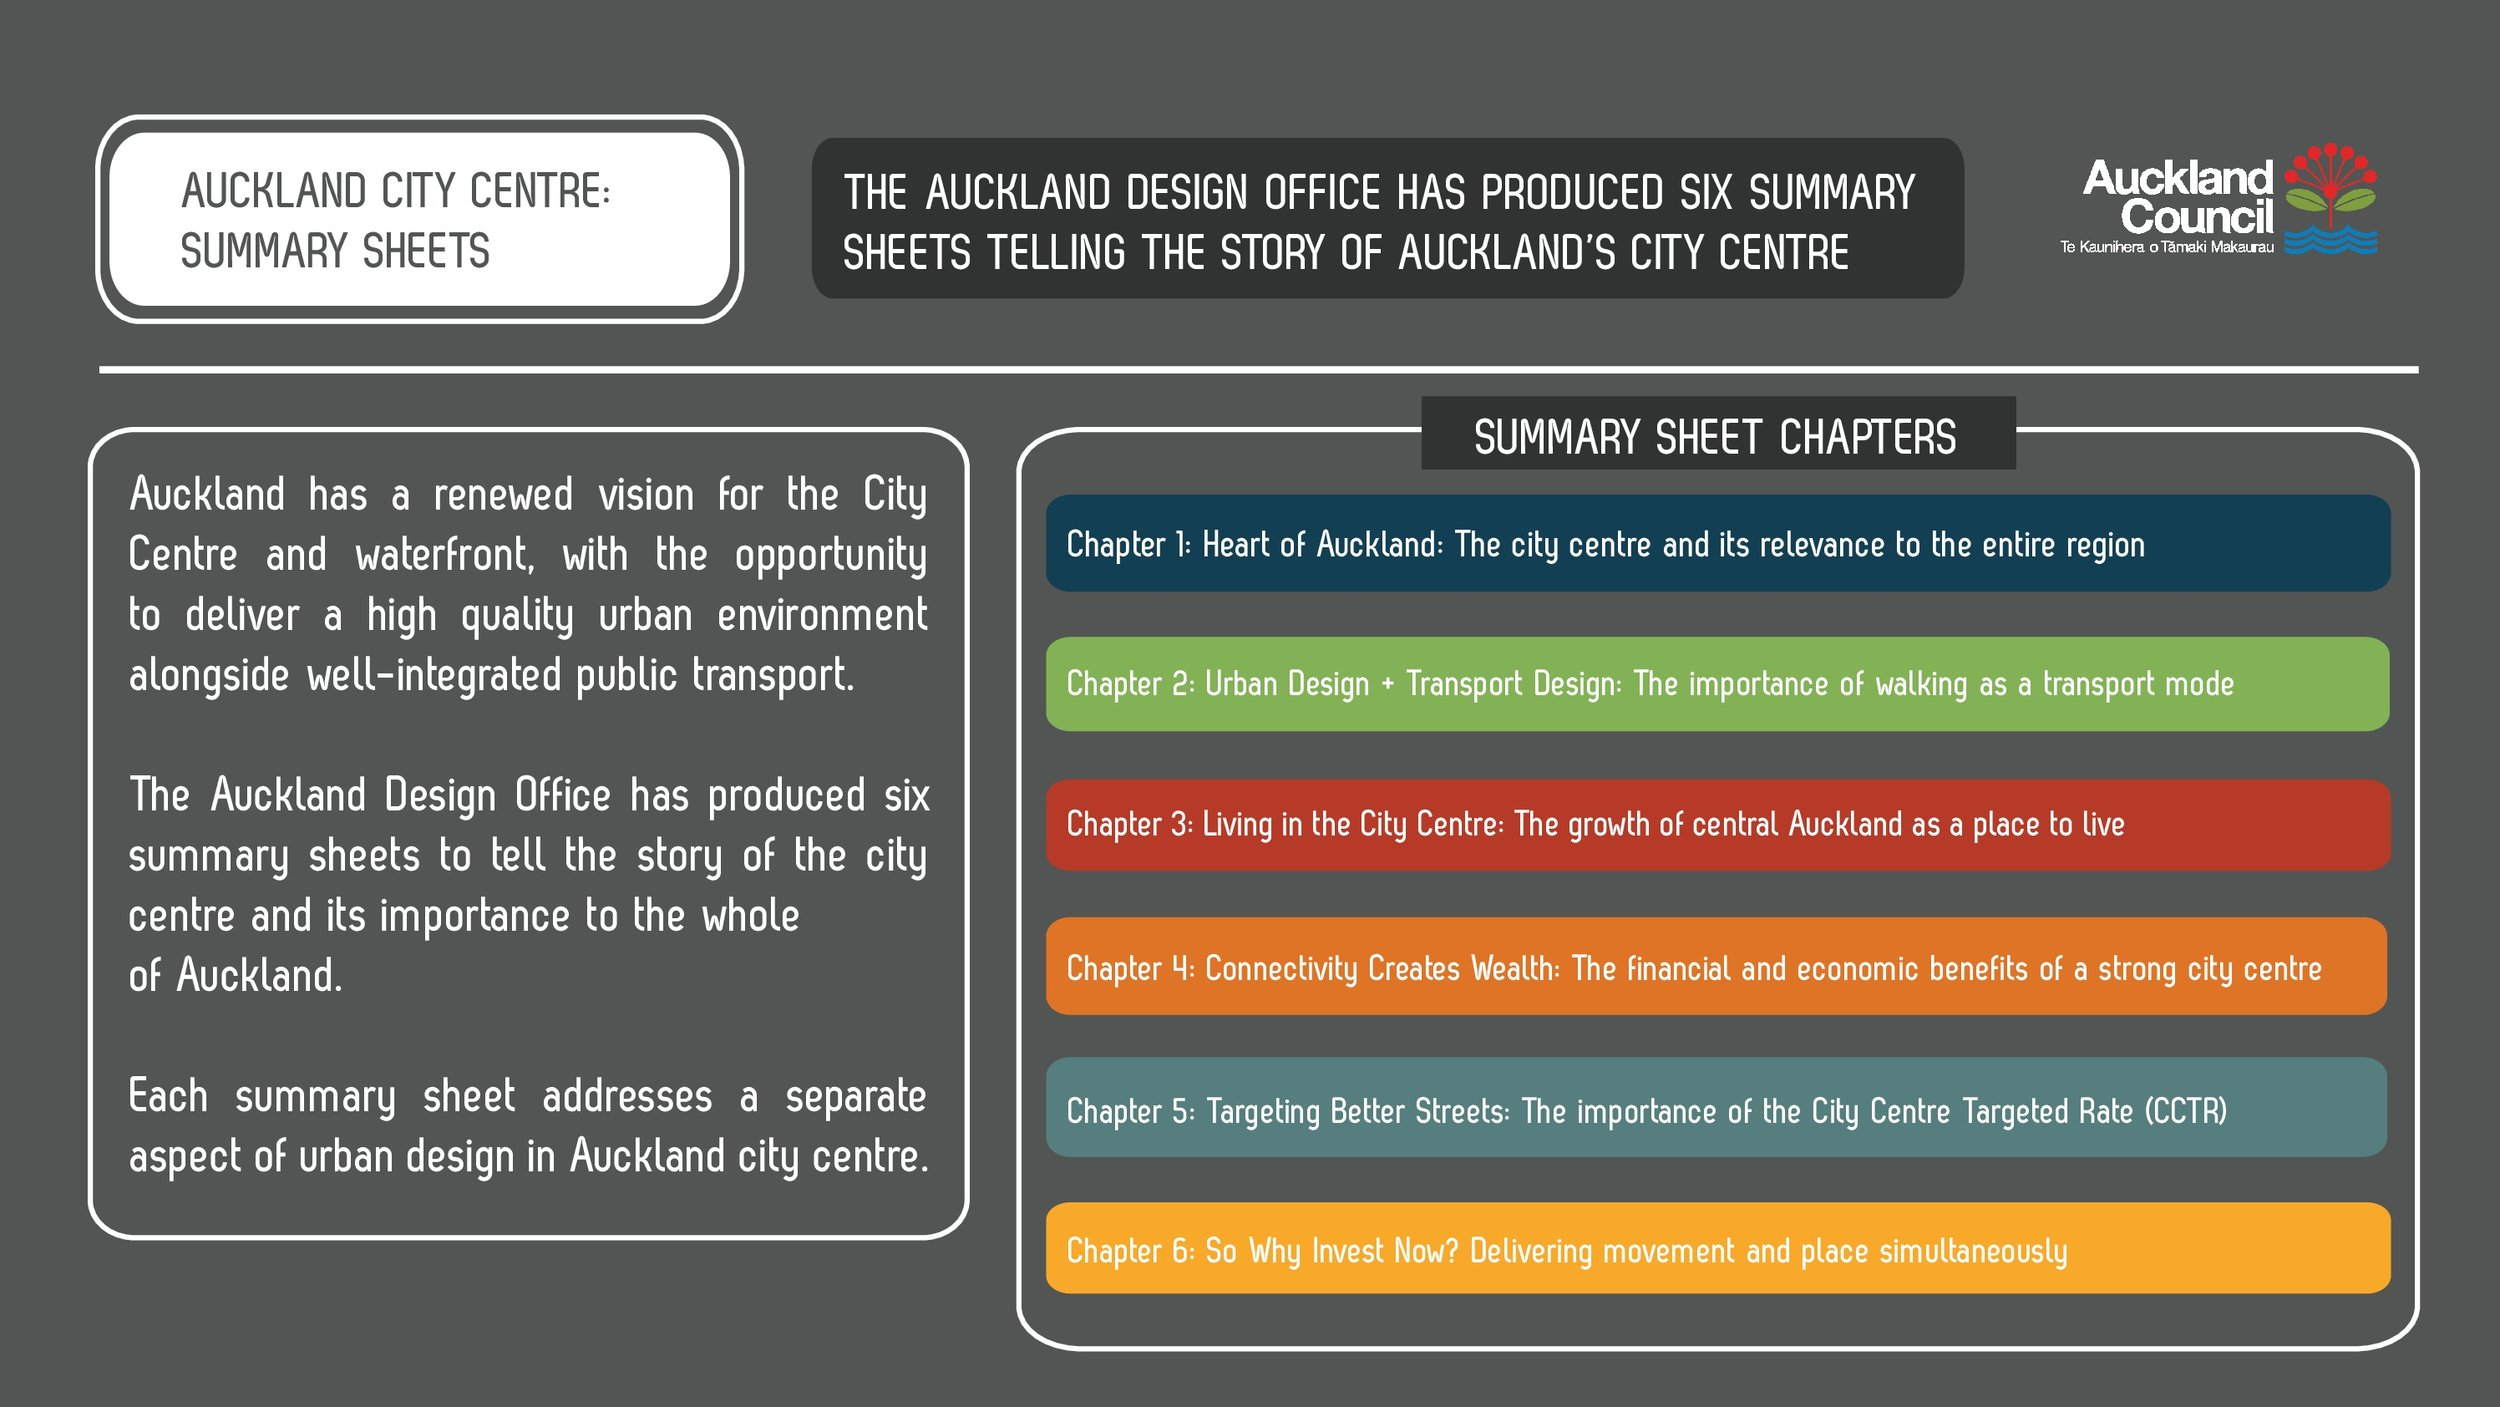 Auckland-City-Centre-Summary-Sheets.ADO-Nov17-001.jpg